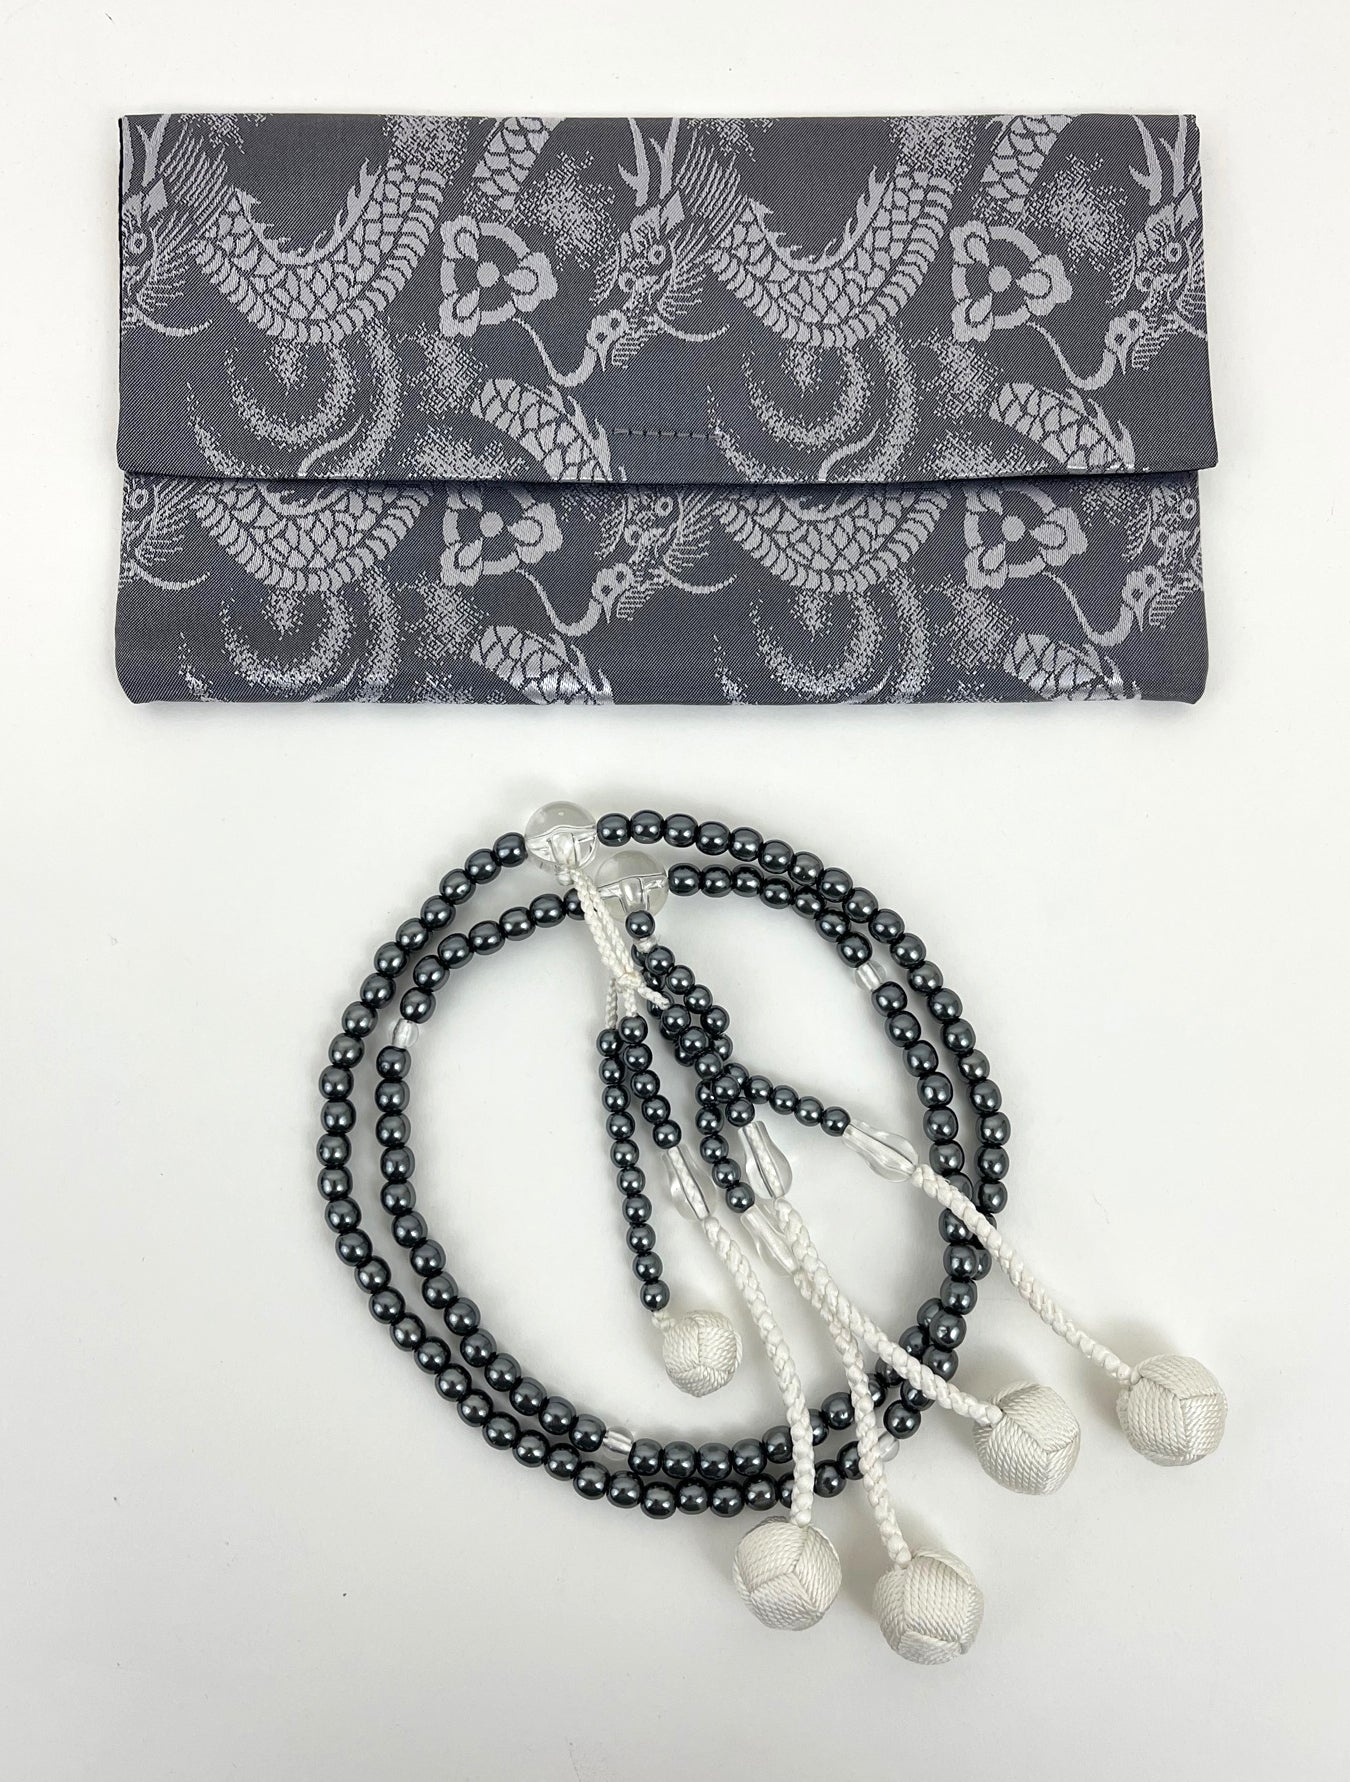 Black Pearl Beads with Knitted Tassels Beads Set - Large Beads (Large Beads Case)